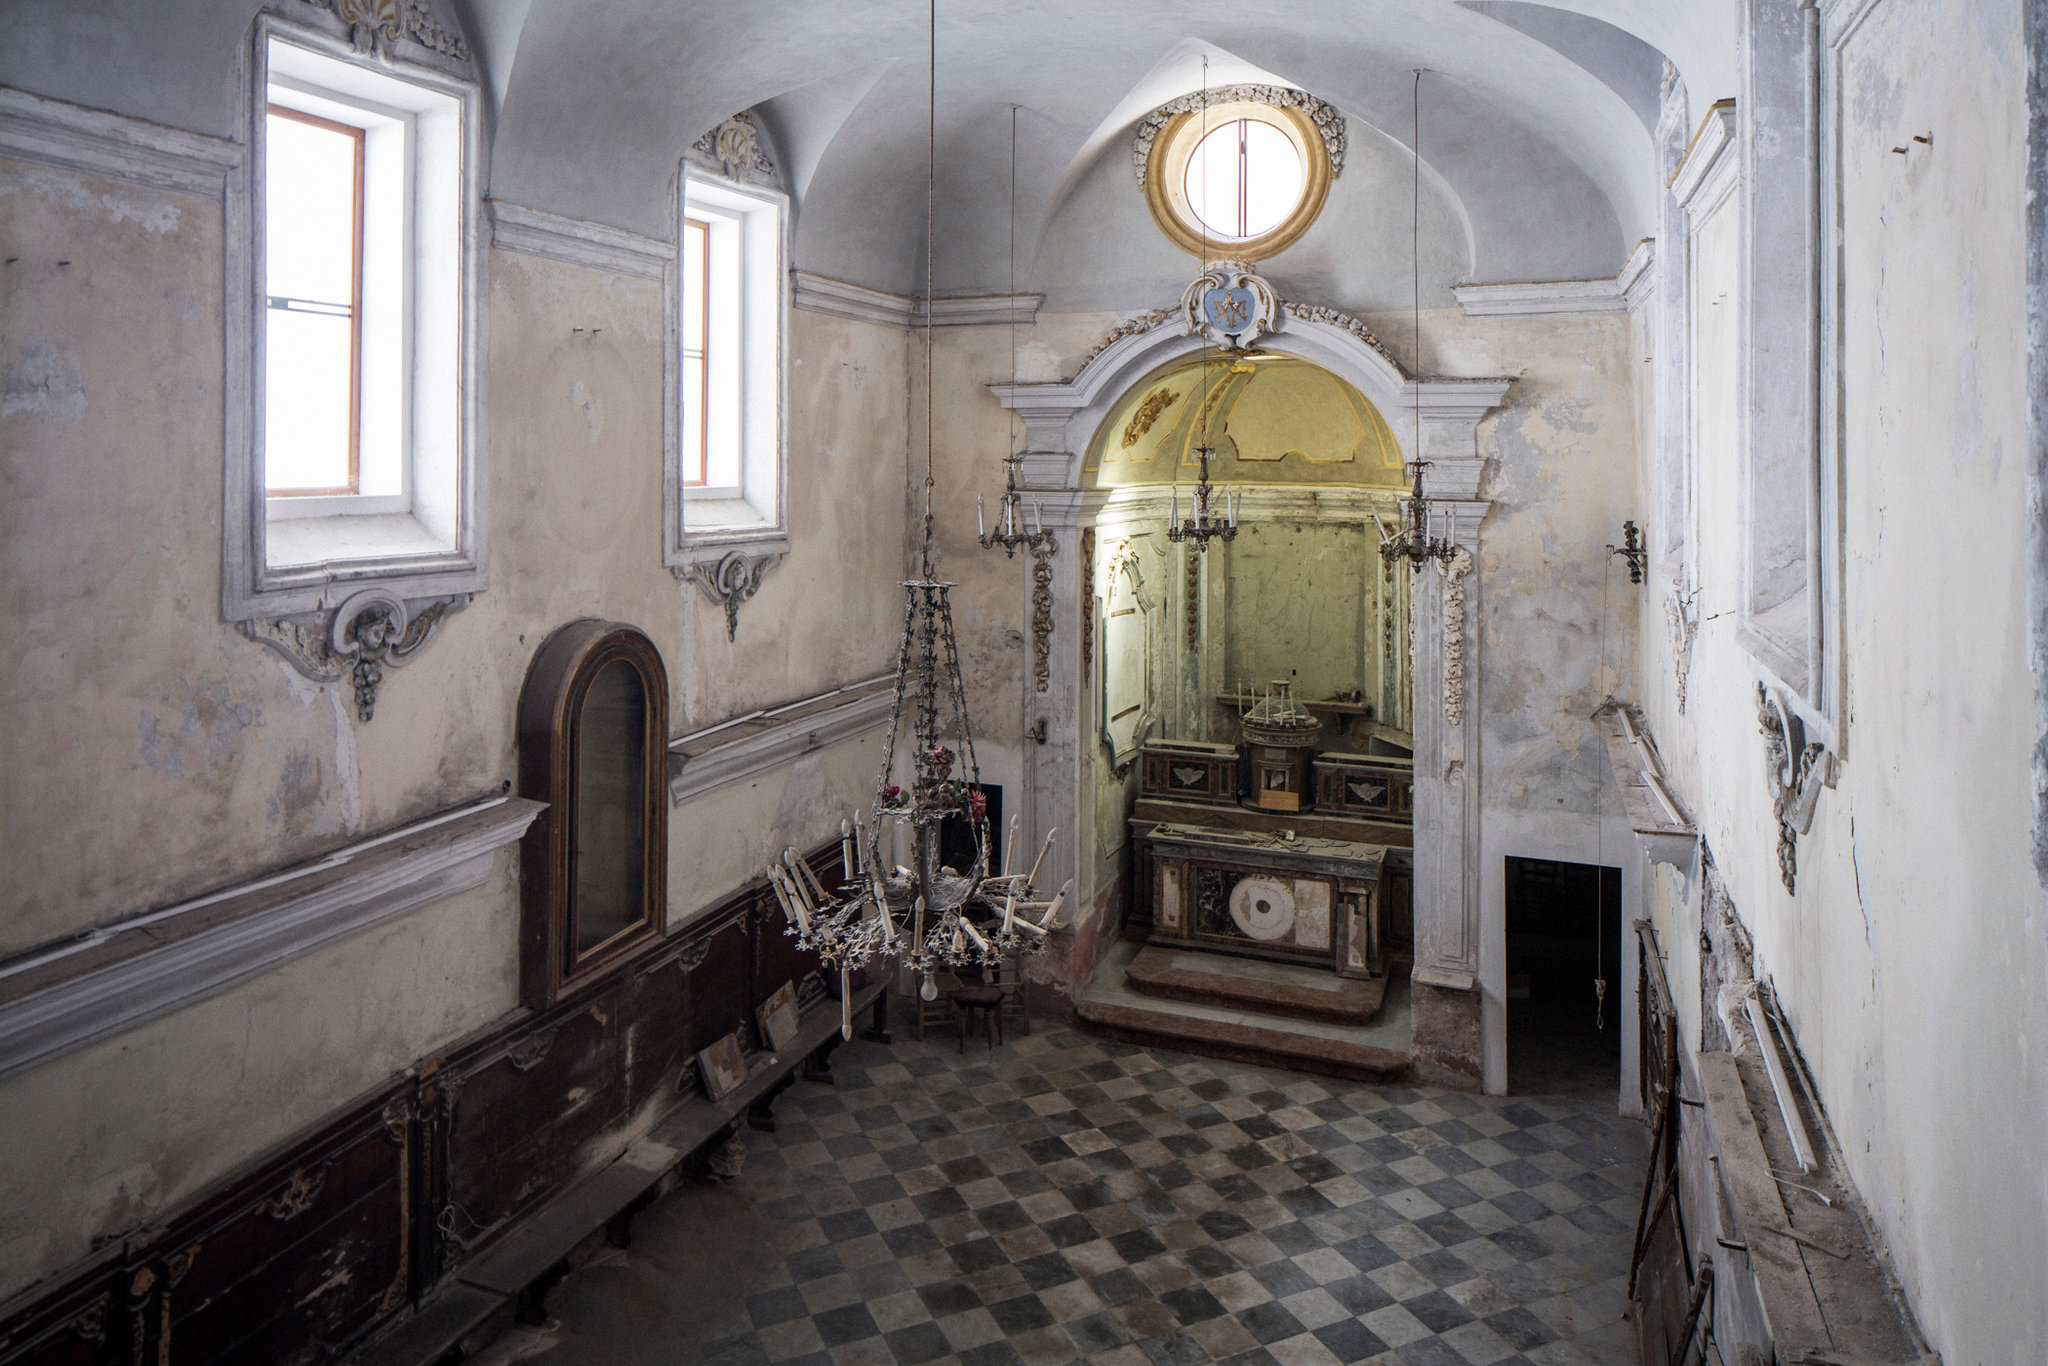 The former Baroque oratory known as Santa Maria del Sabato, or Holy Mary of Saturday, in the ancient Jewish quarter of Palermo, Sicily. It will soon become Palermo's first synagogue in 500 years. Credit: Gianni Cipriano for The New York Times